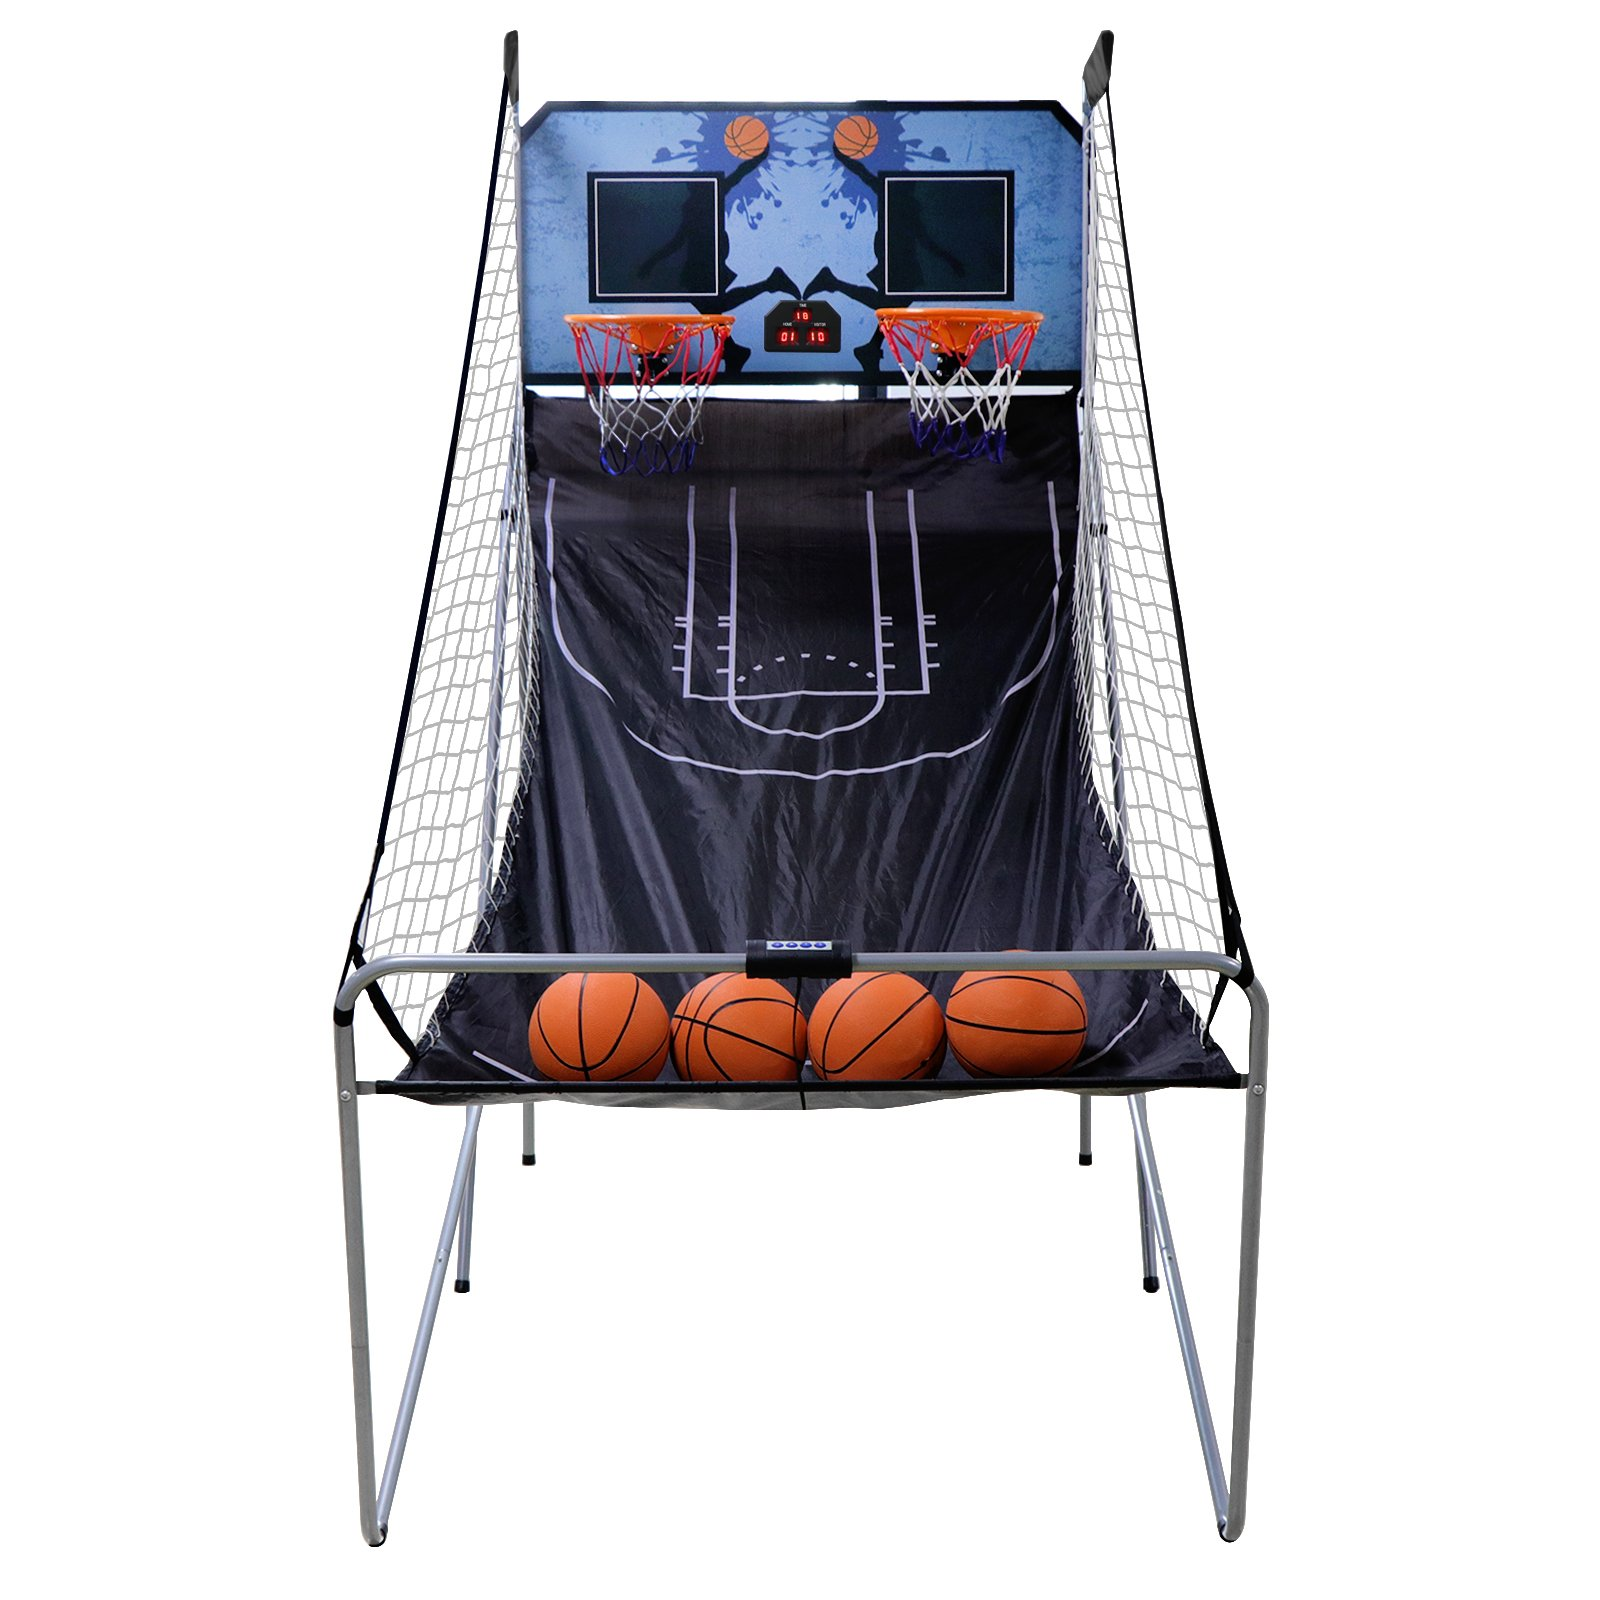 ZENY Foldable Basketball Arcade Game Sport 2-Player LED Scoreboard Electric Basketball Hoop Games Dual Shot,4 Basketballs by ZENY